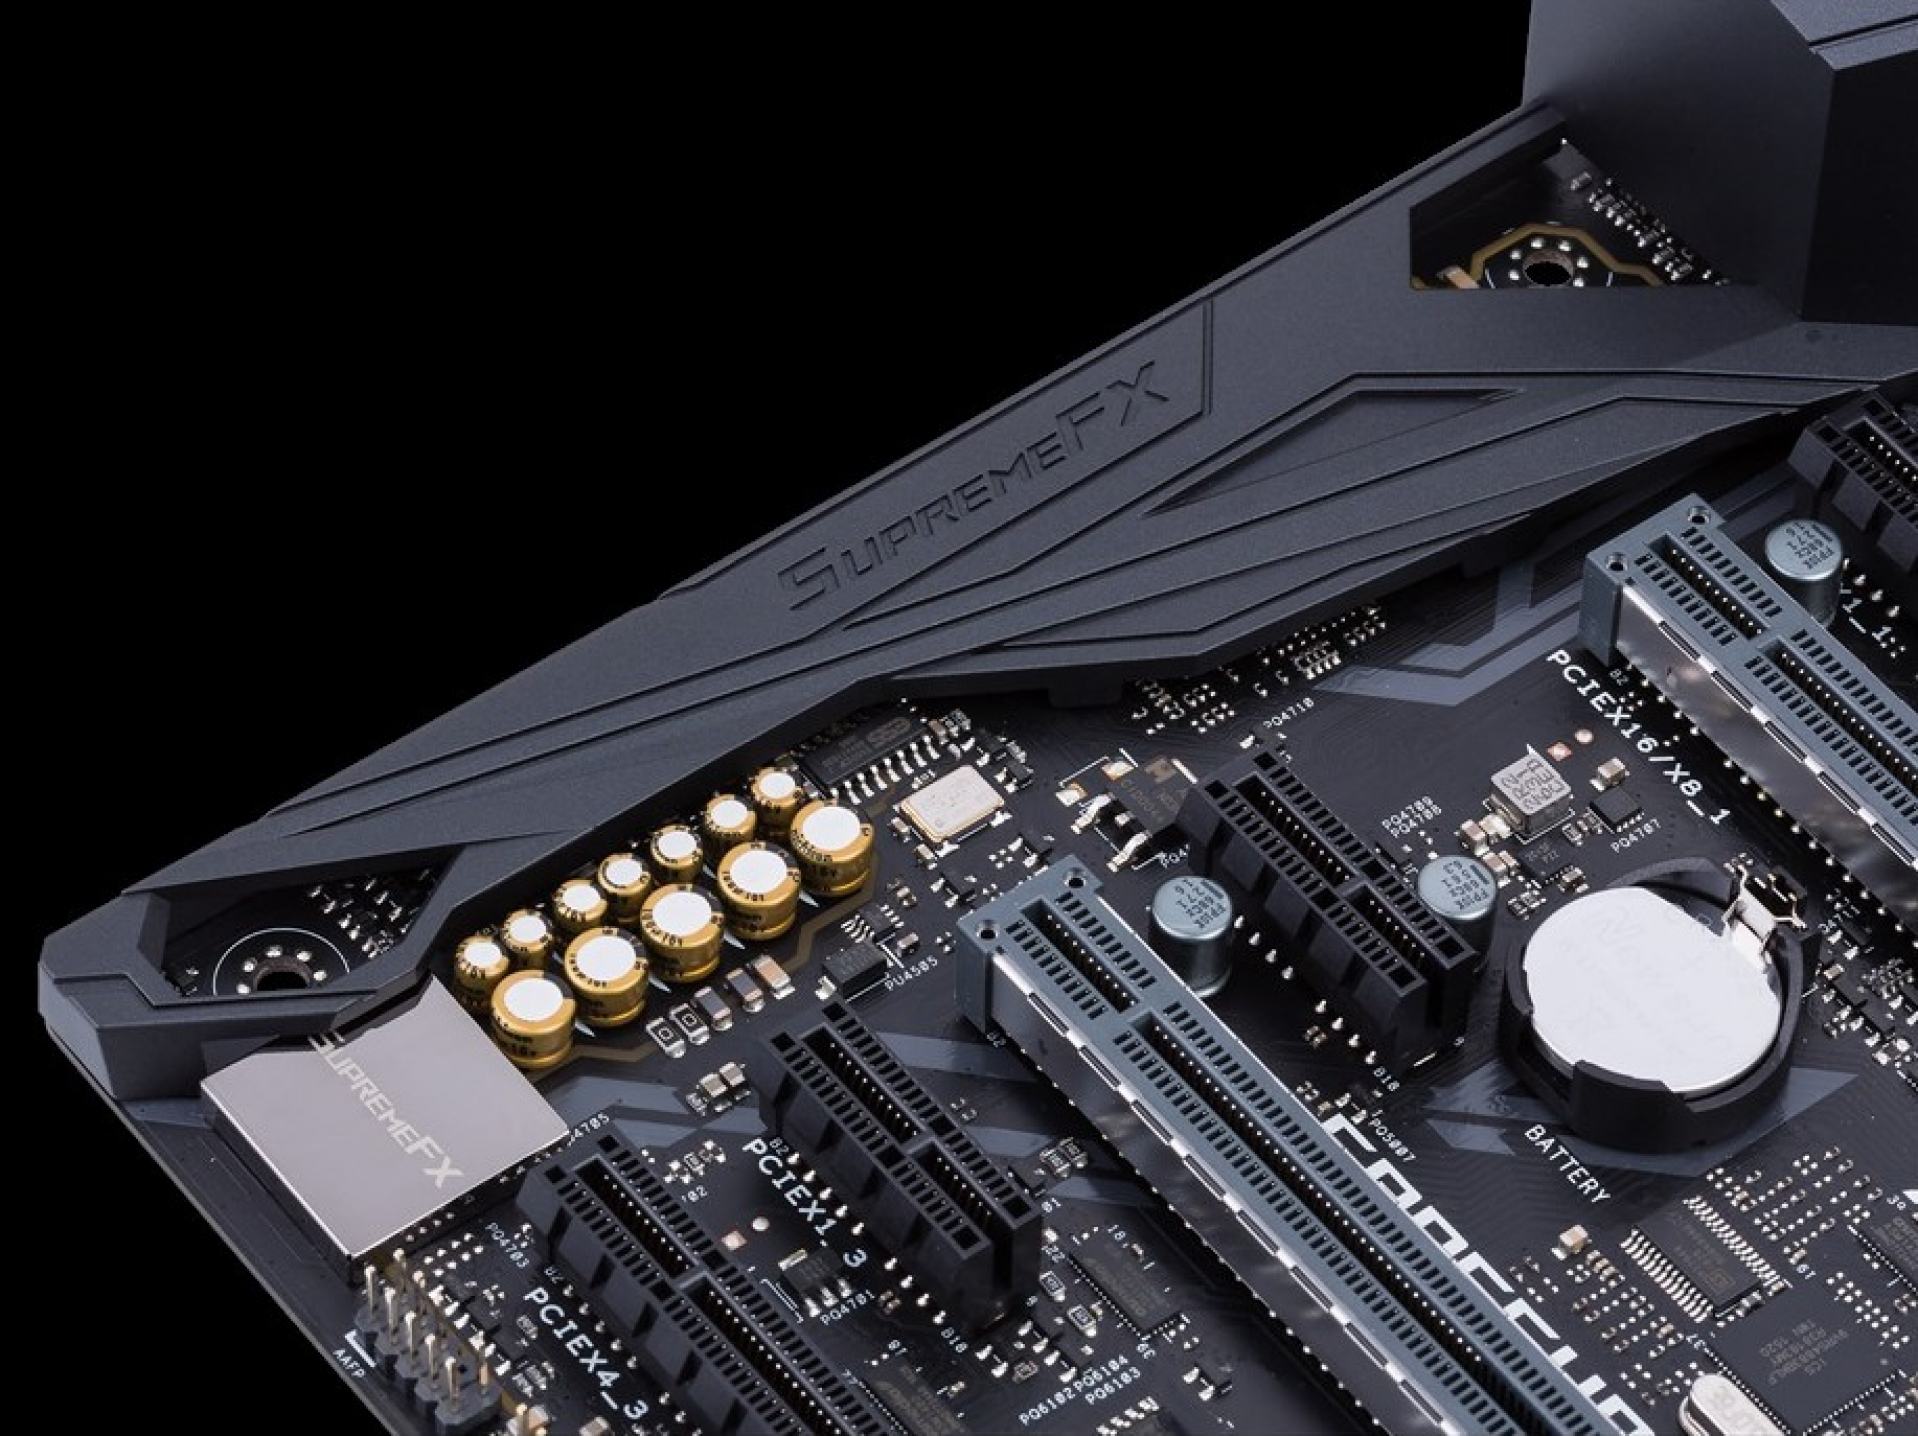 ASUS starts removing PCIe 4 0 support from pre-X570 AM4